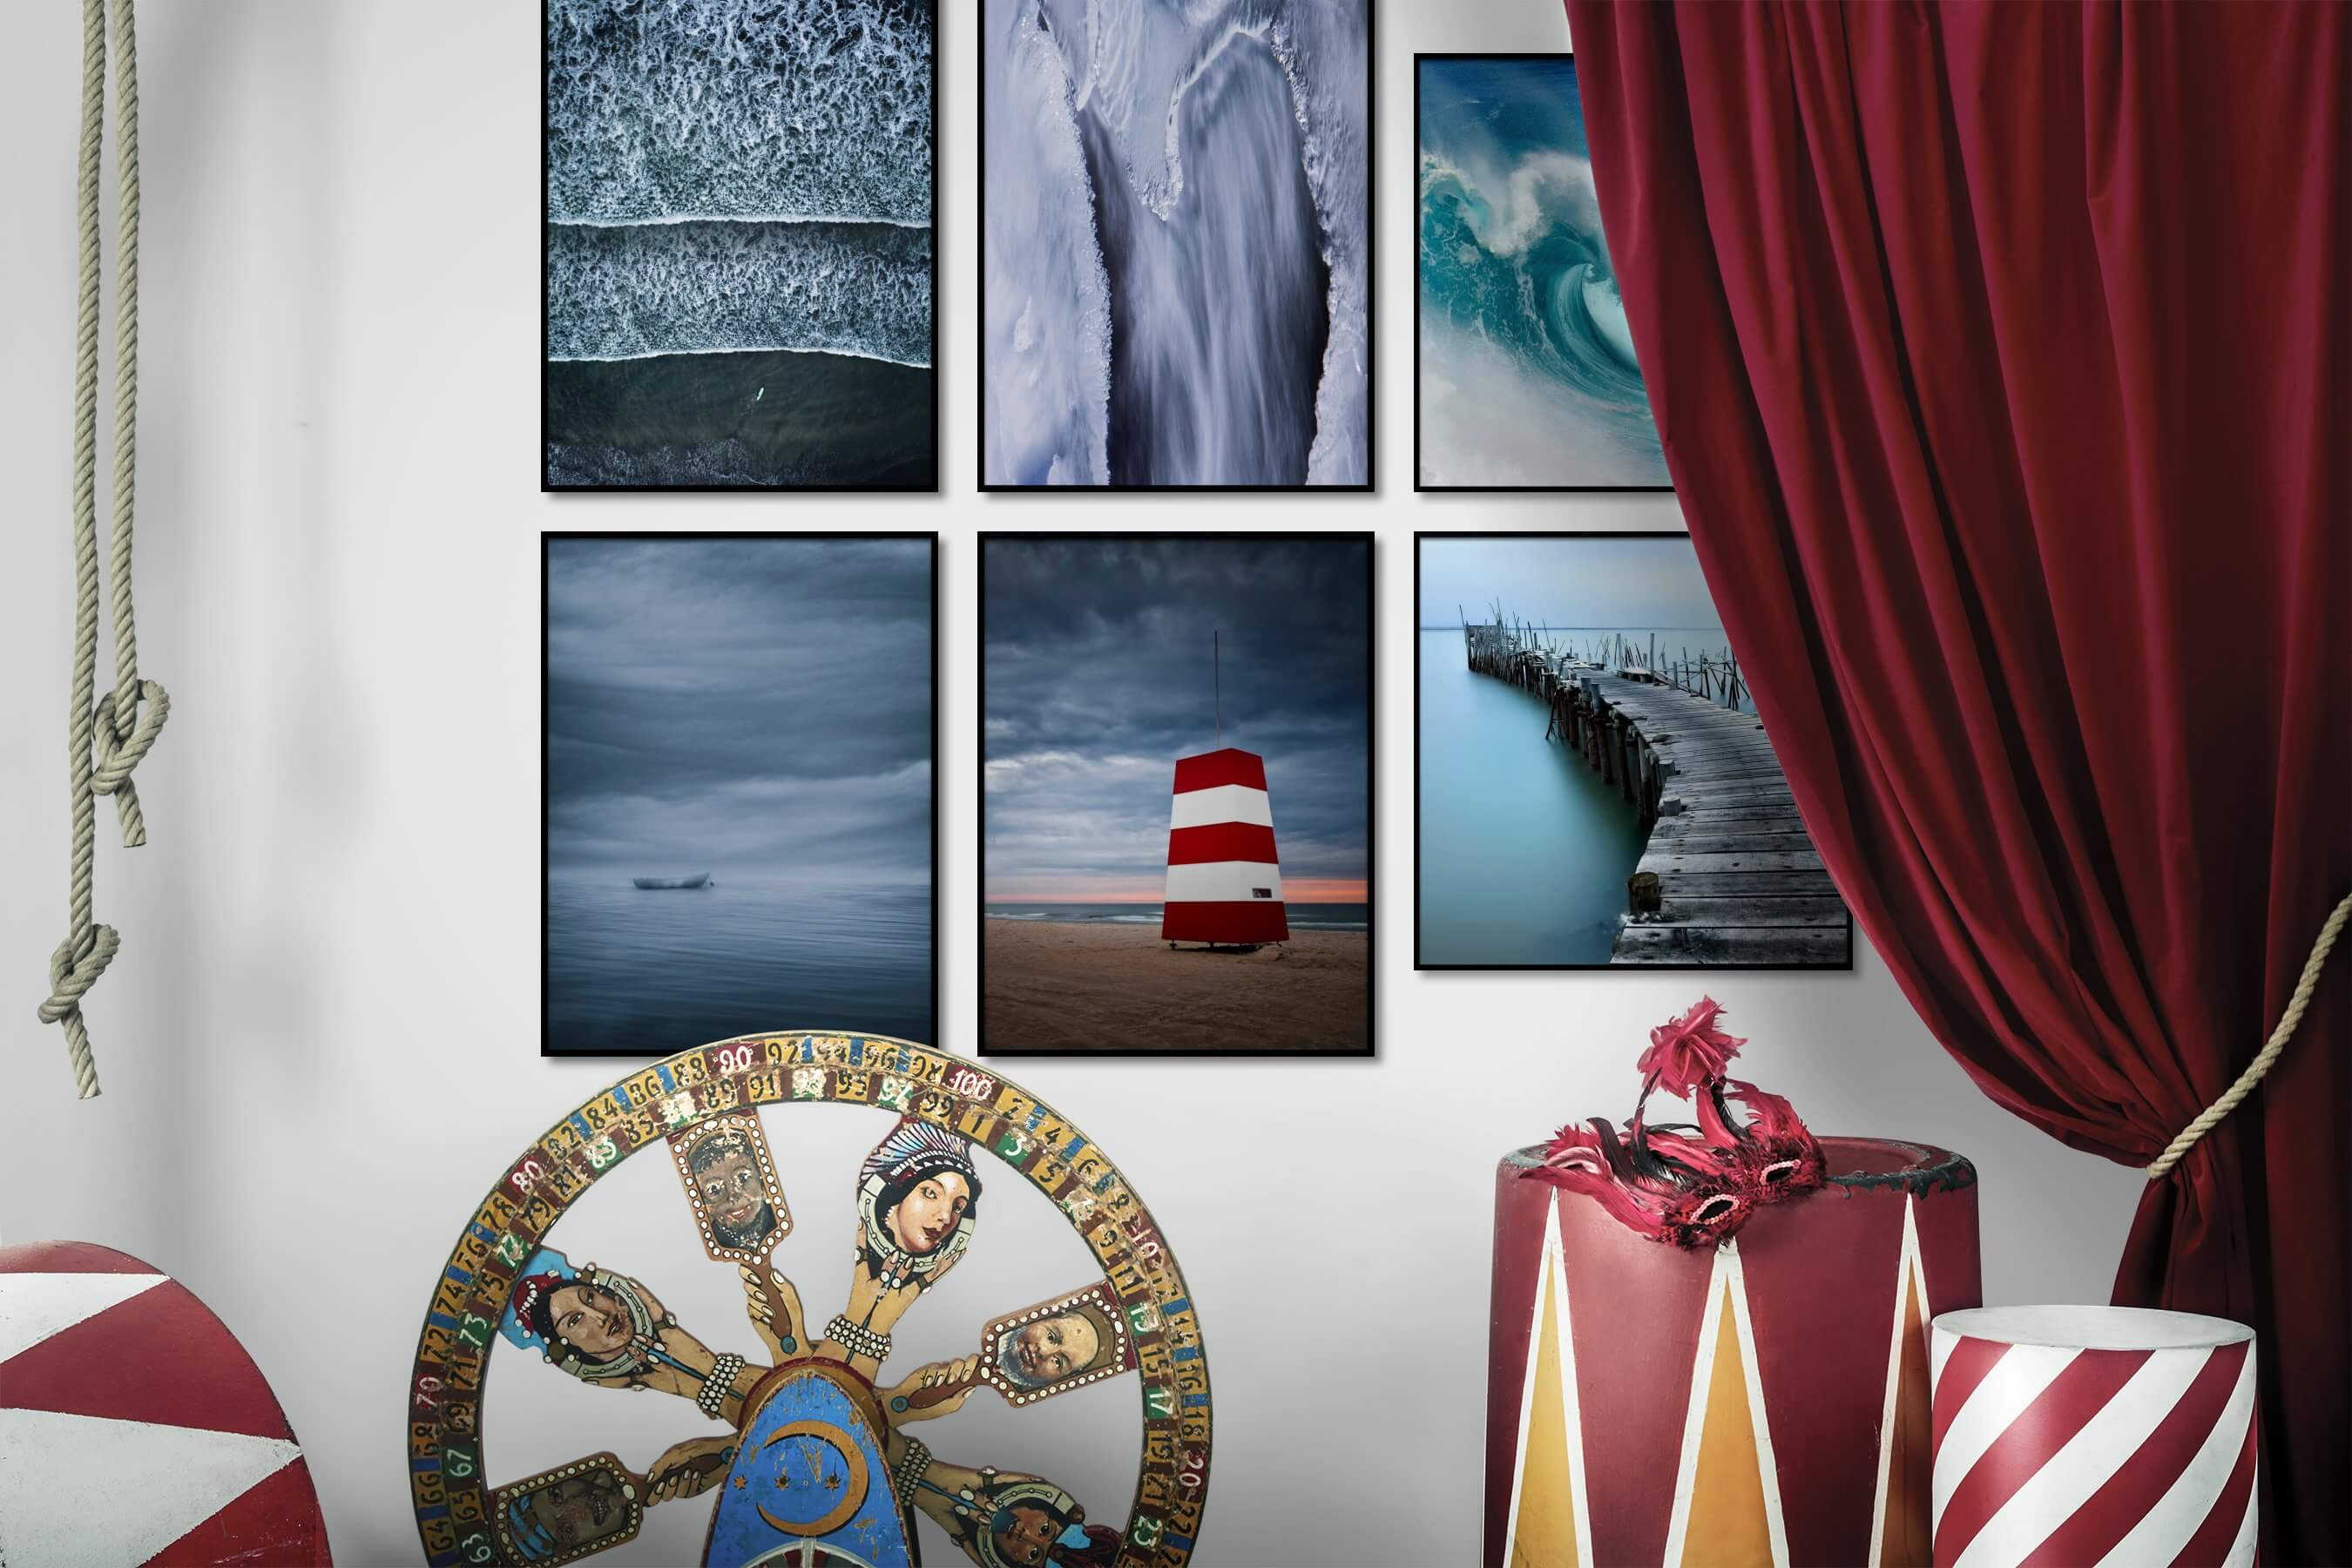 Gallery wall idea with six framed pictures arranged on a wall depicting For the Moderate, Beach & Water, Nature, and Mindfulness